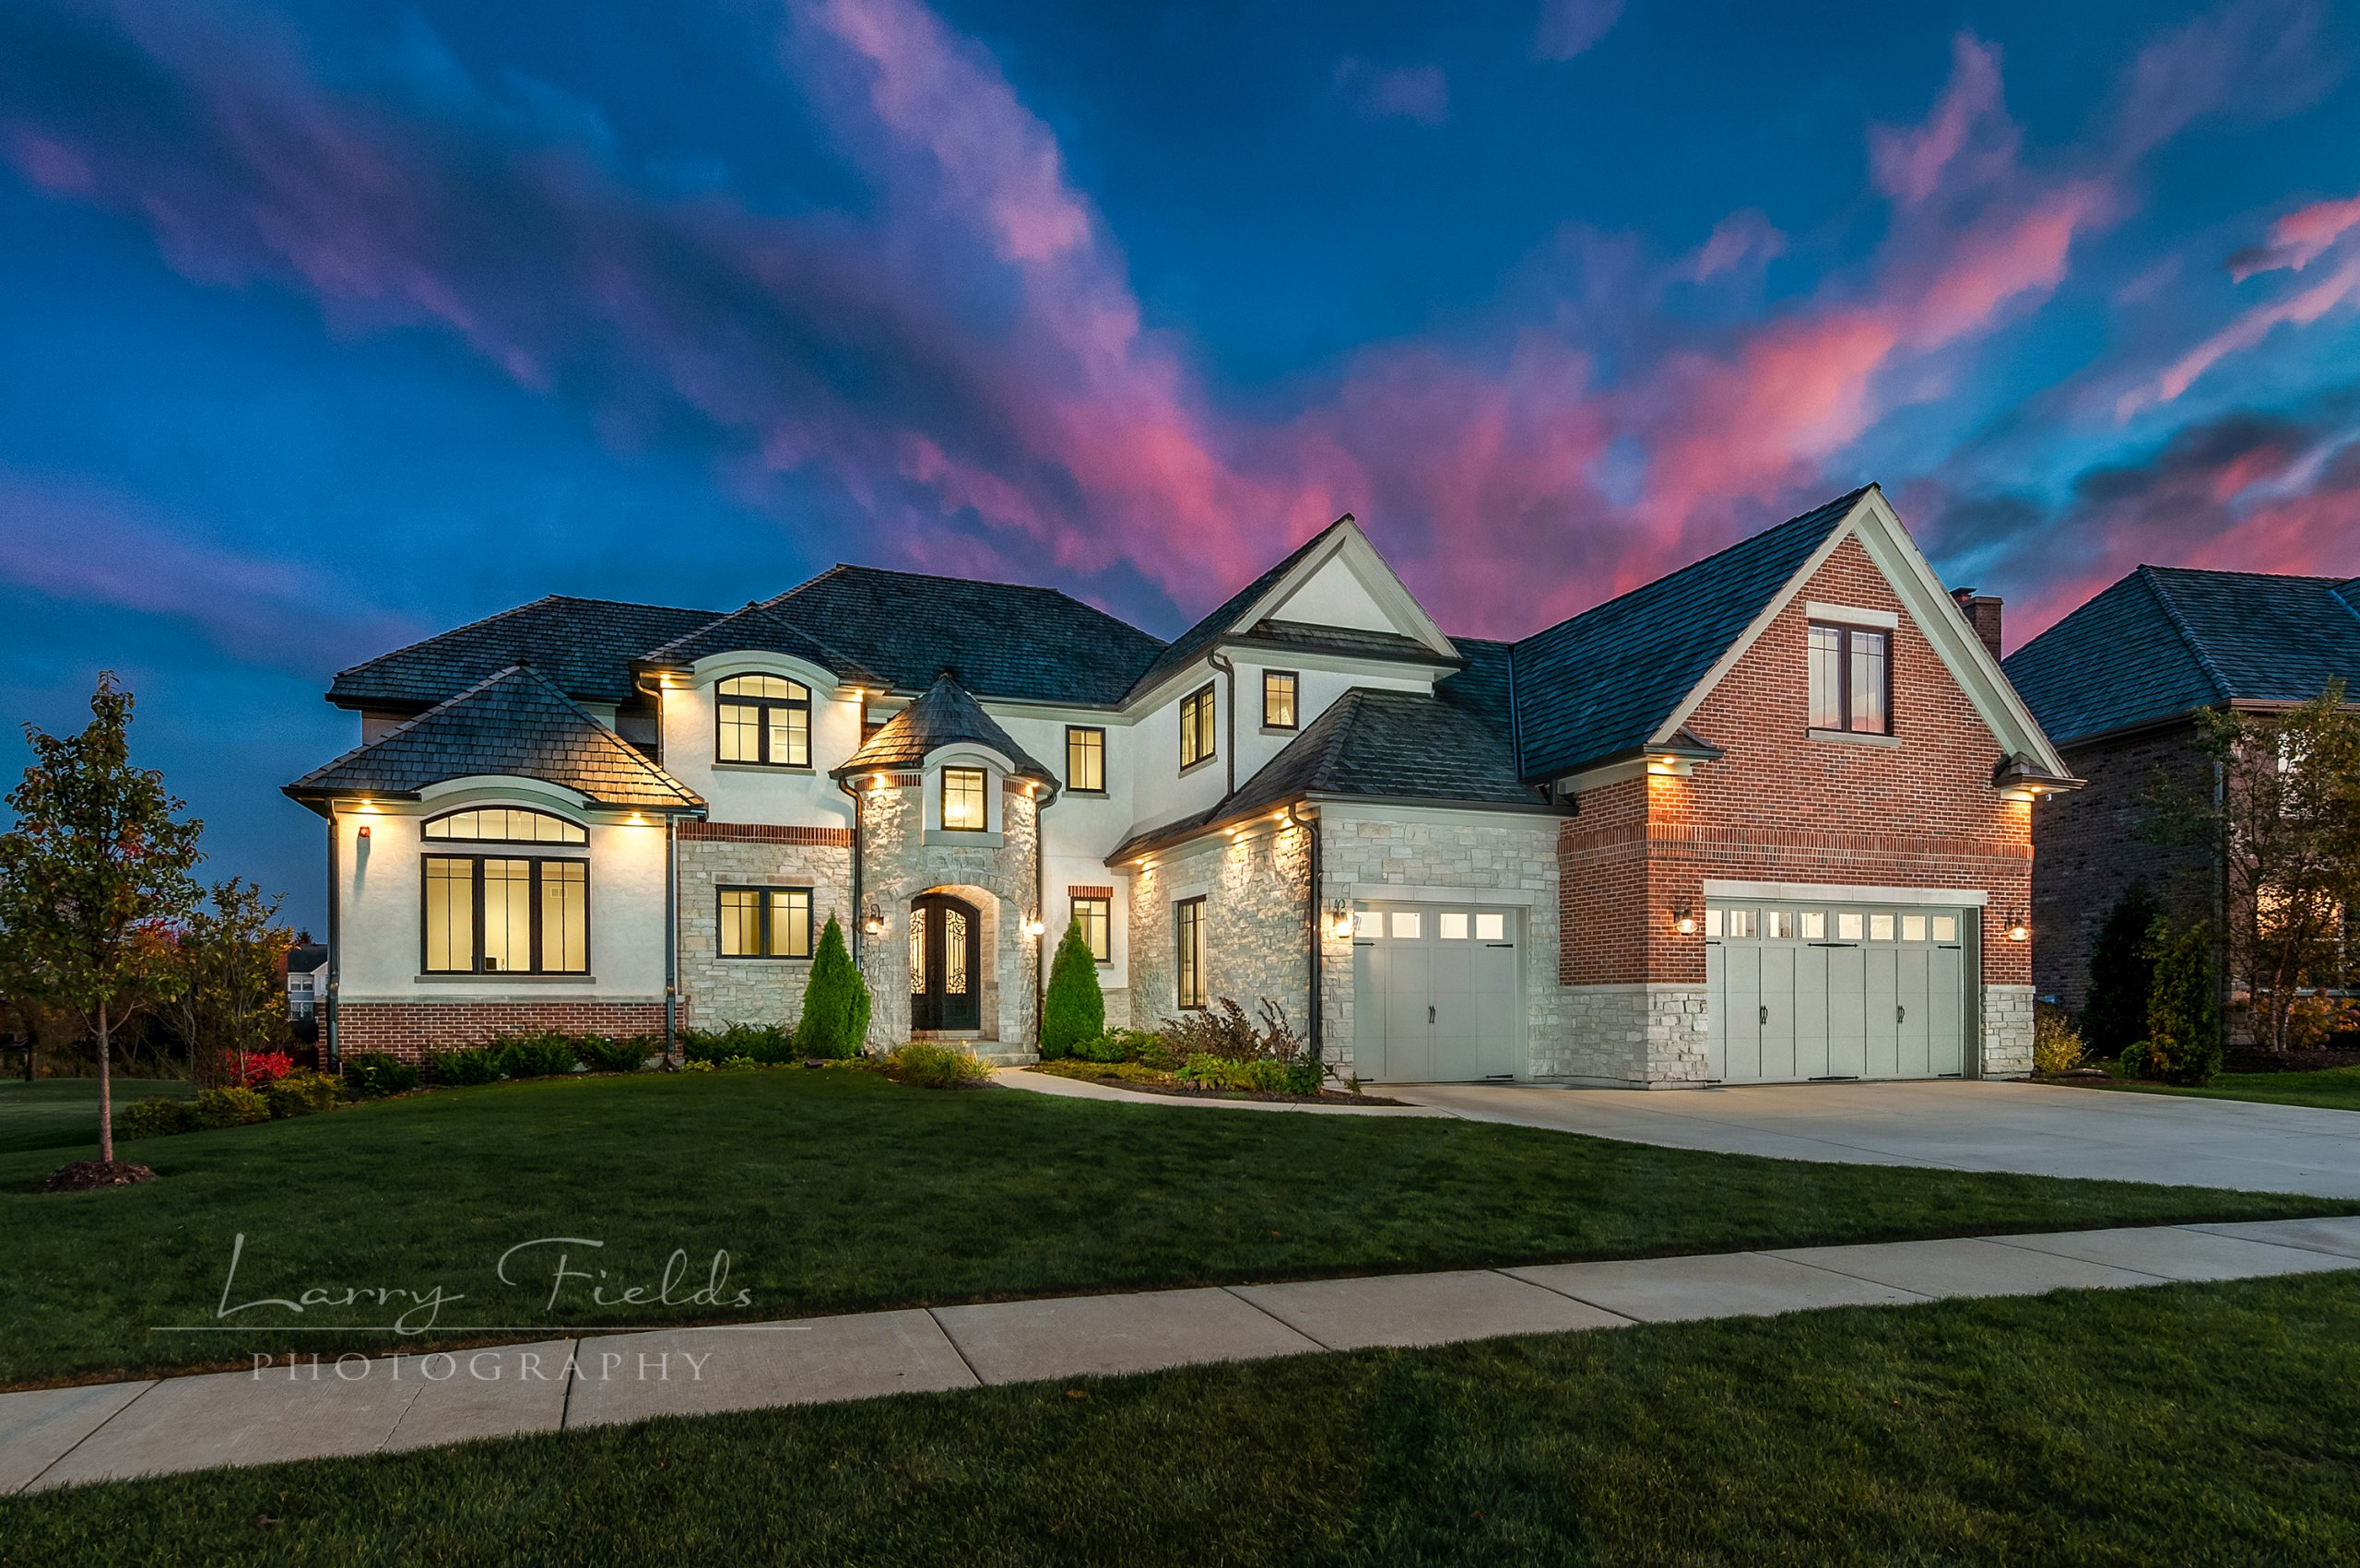 Twilight shot of 1616 Lake Charles Dr., Vernon Hills, Illinois with watermark. Twilight photograph of a high-end home.